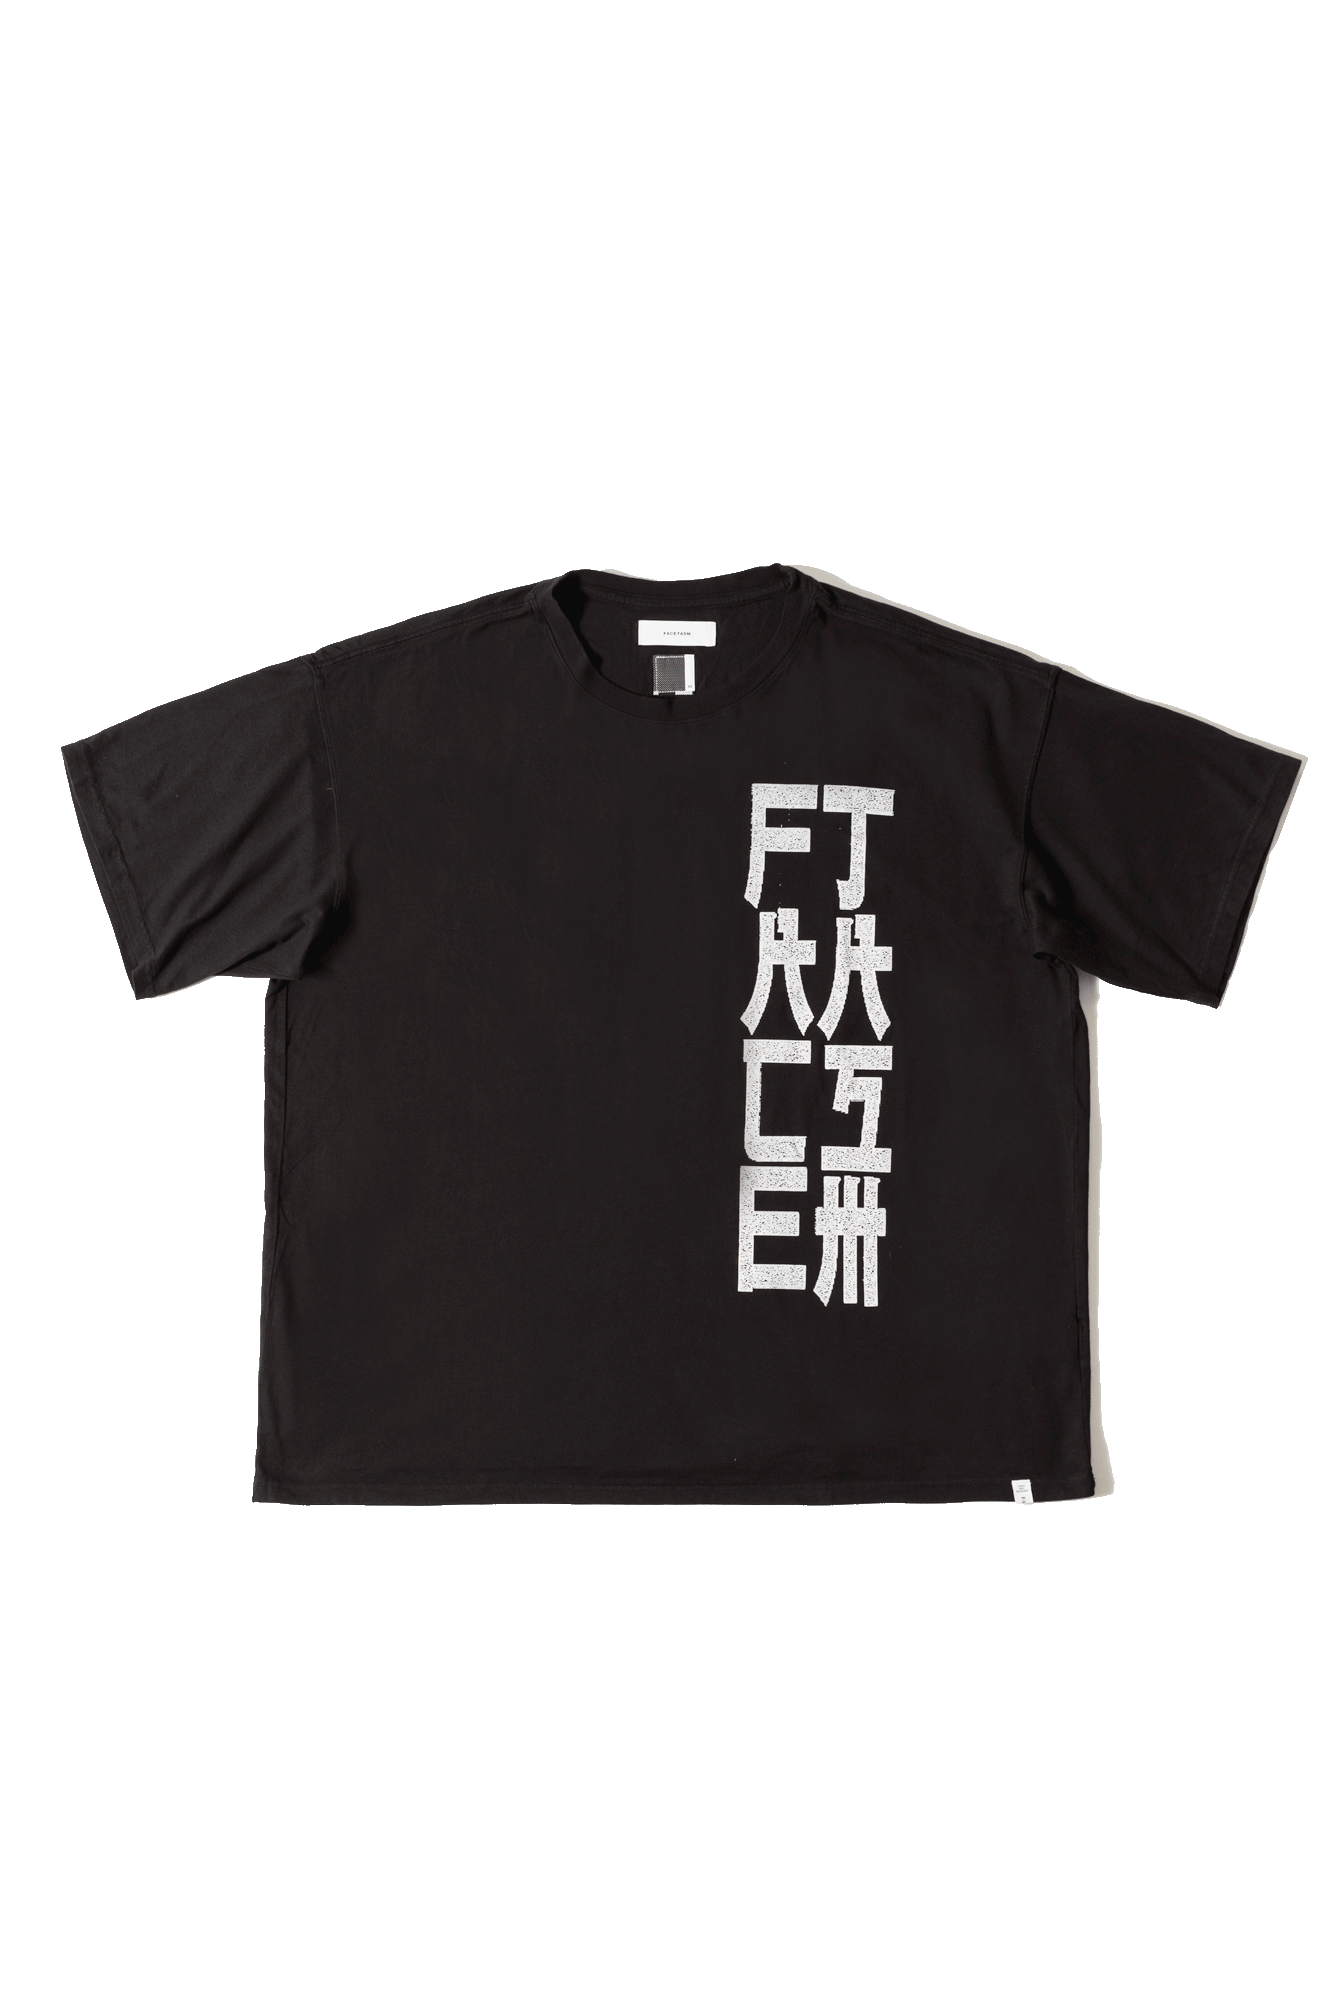 Facetasm T-Shirts T-Shirt Black 18FWMR#CU02#BLACK#OS - One Block Down